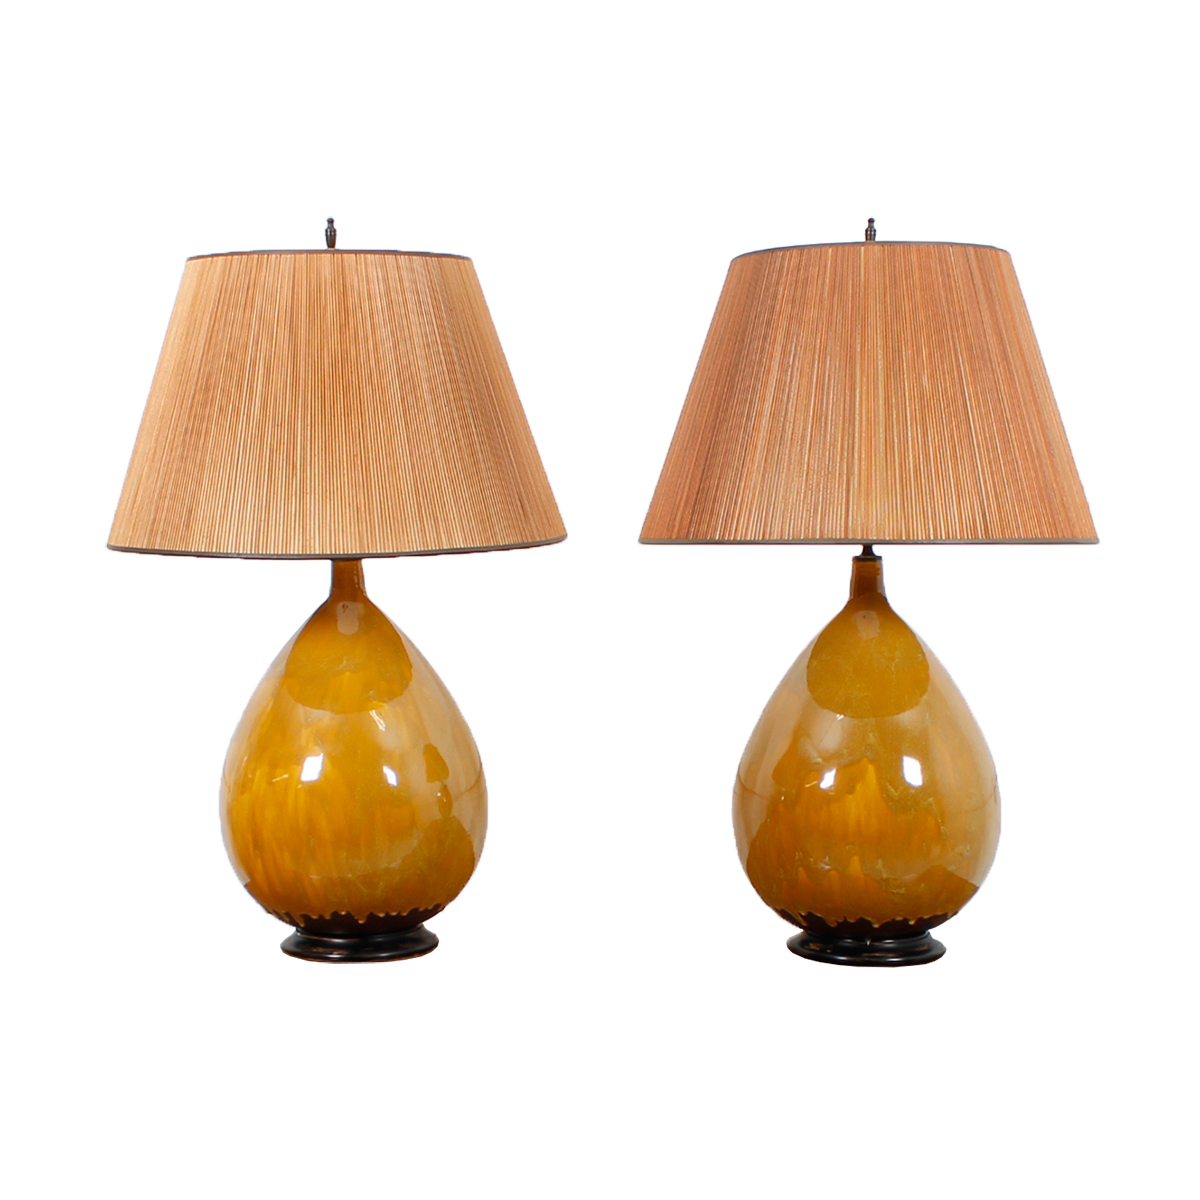 Pair of MCM Ovoid Form Drip Glaze Pottery Lamps